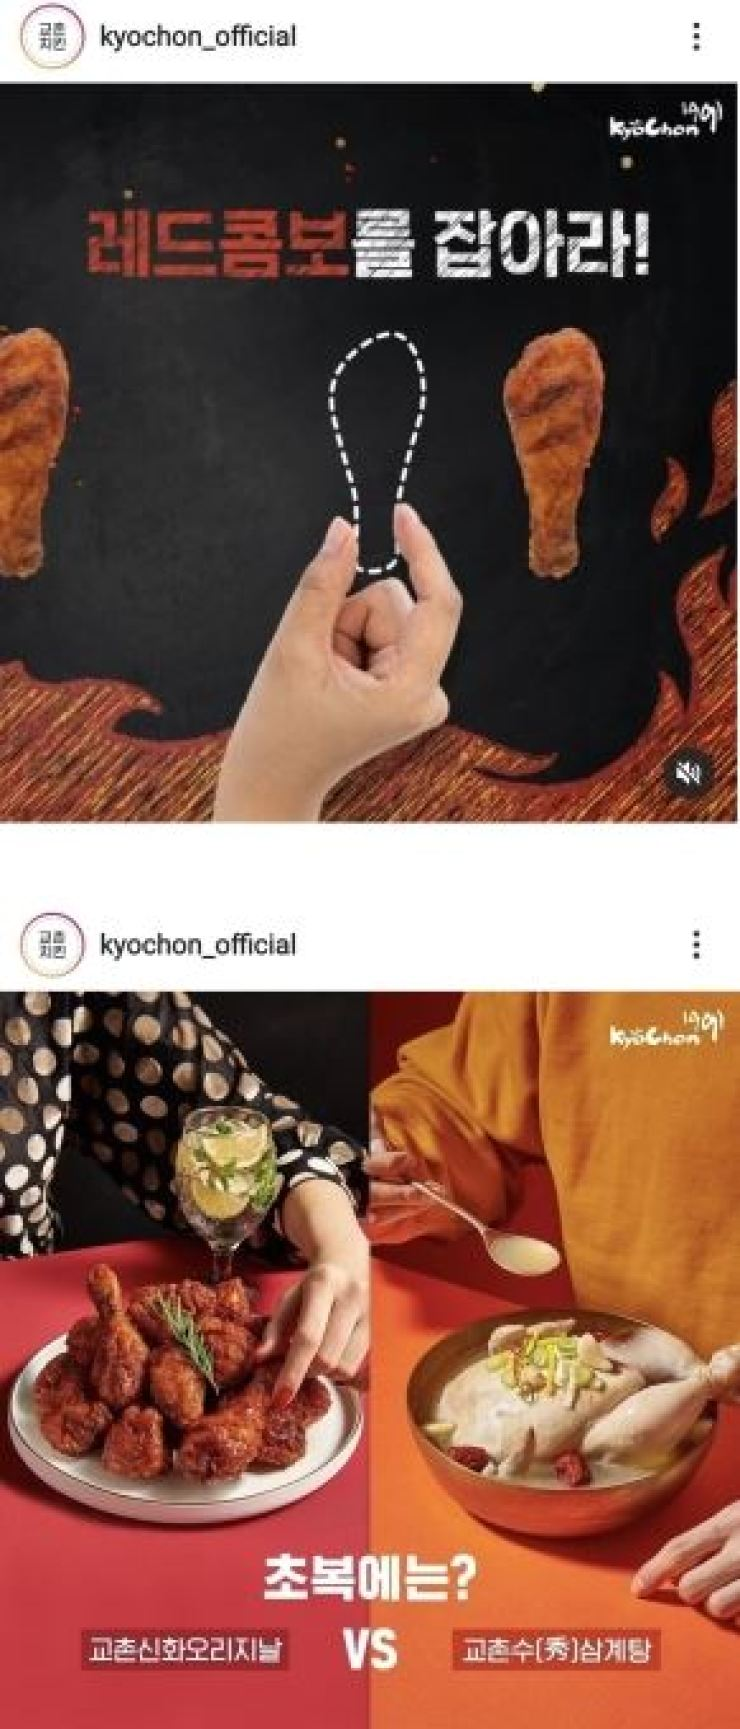 Kyochon F&B's controversial ad on social media account / Screen-captured from Kyochon F&B Instagram